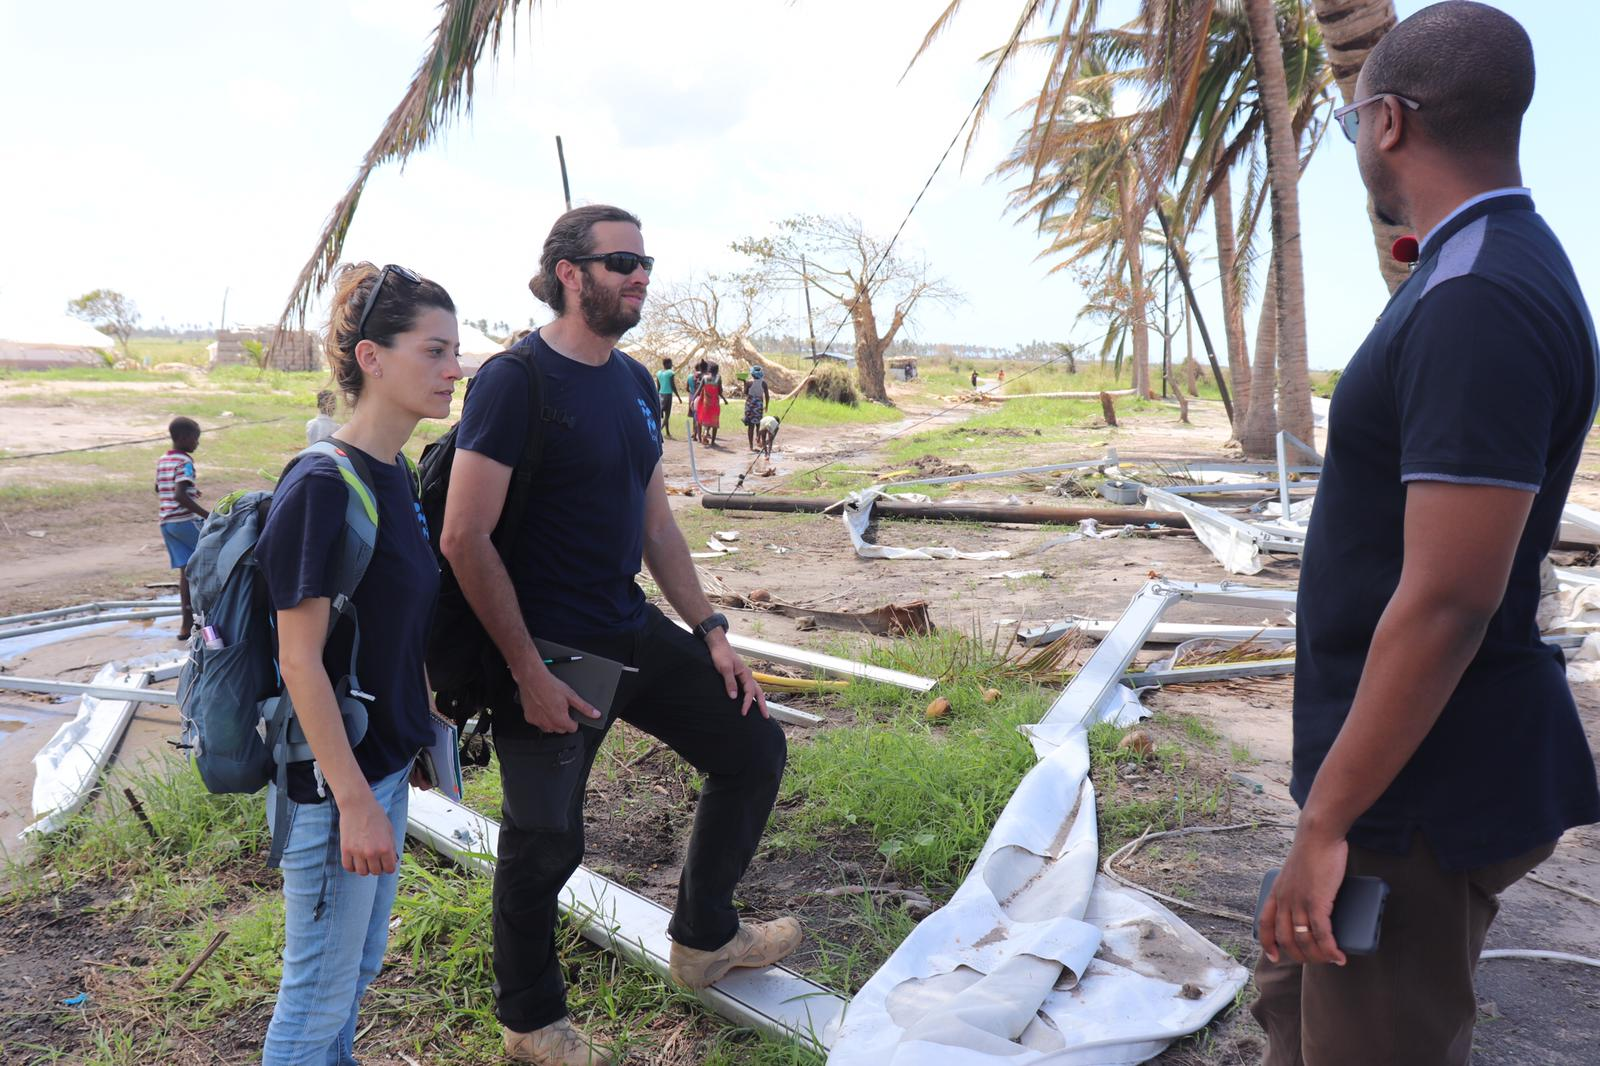 Israeli medics join relief workers as Mozambique crisis